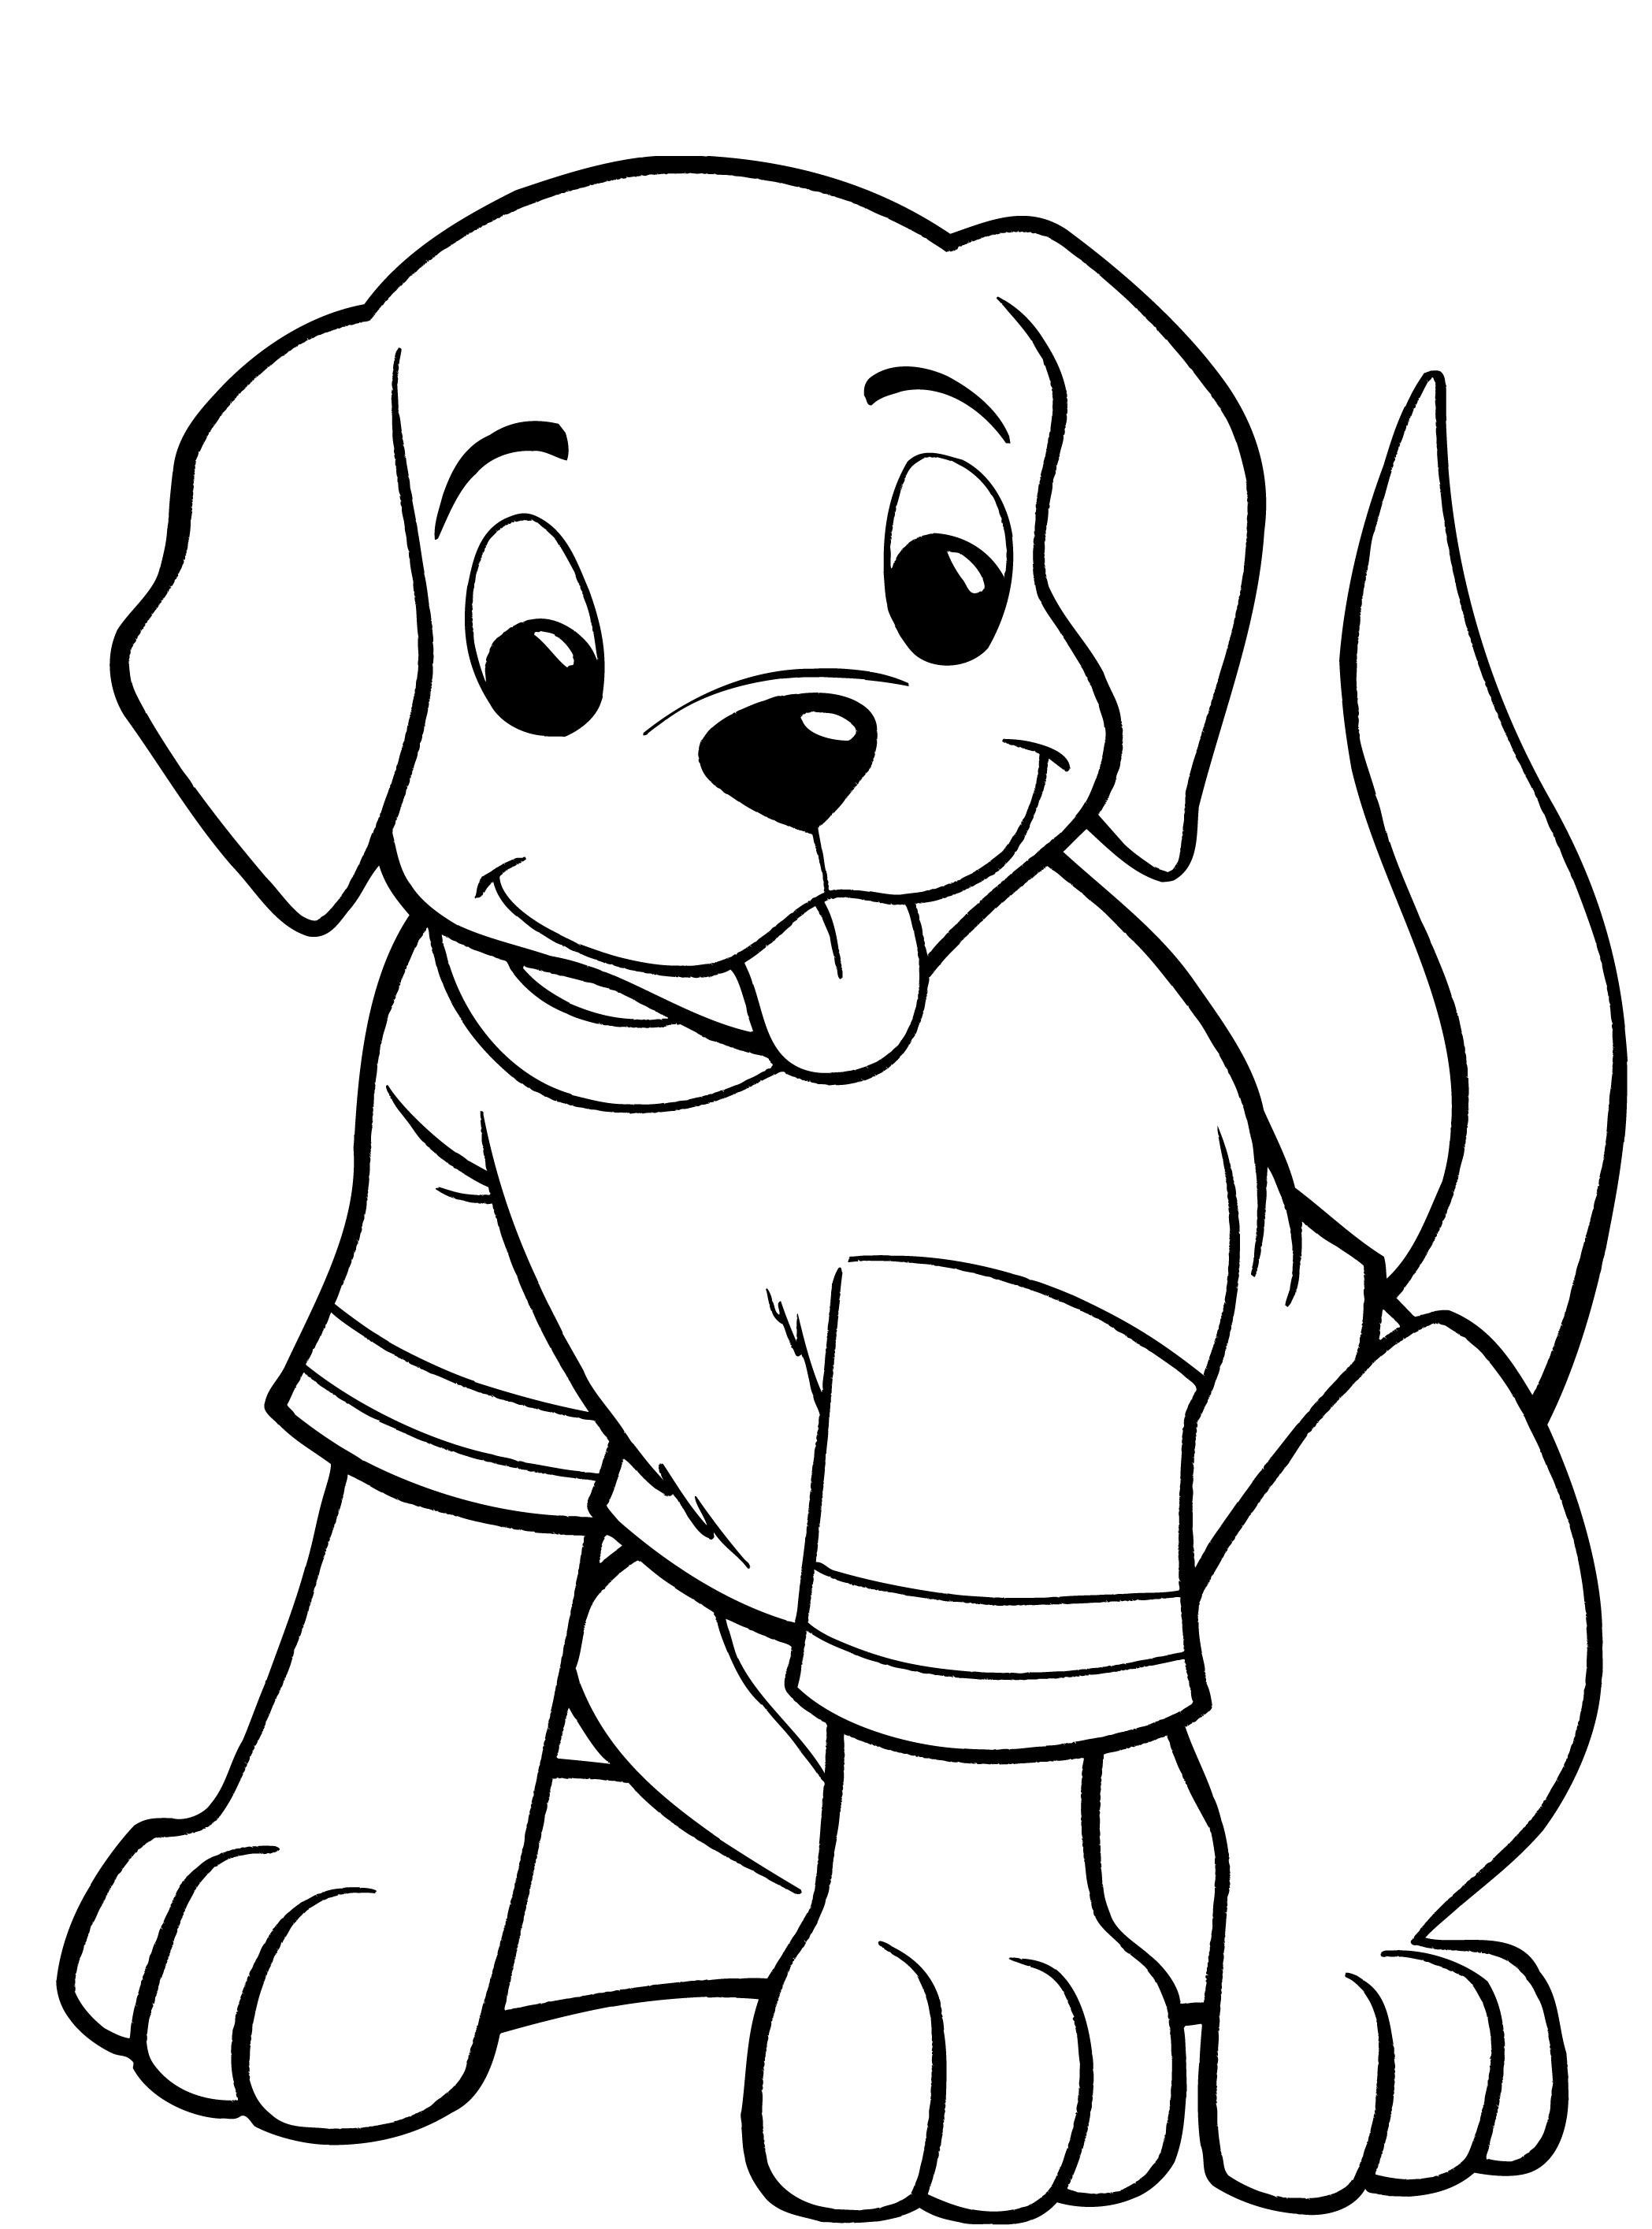 coloring pics of dogs cute dog coloring pages to download and print for free pics of coloring dogs